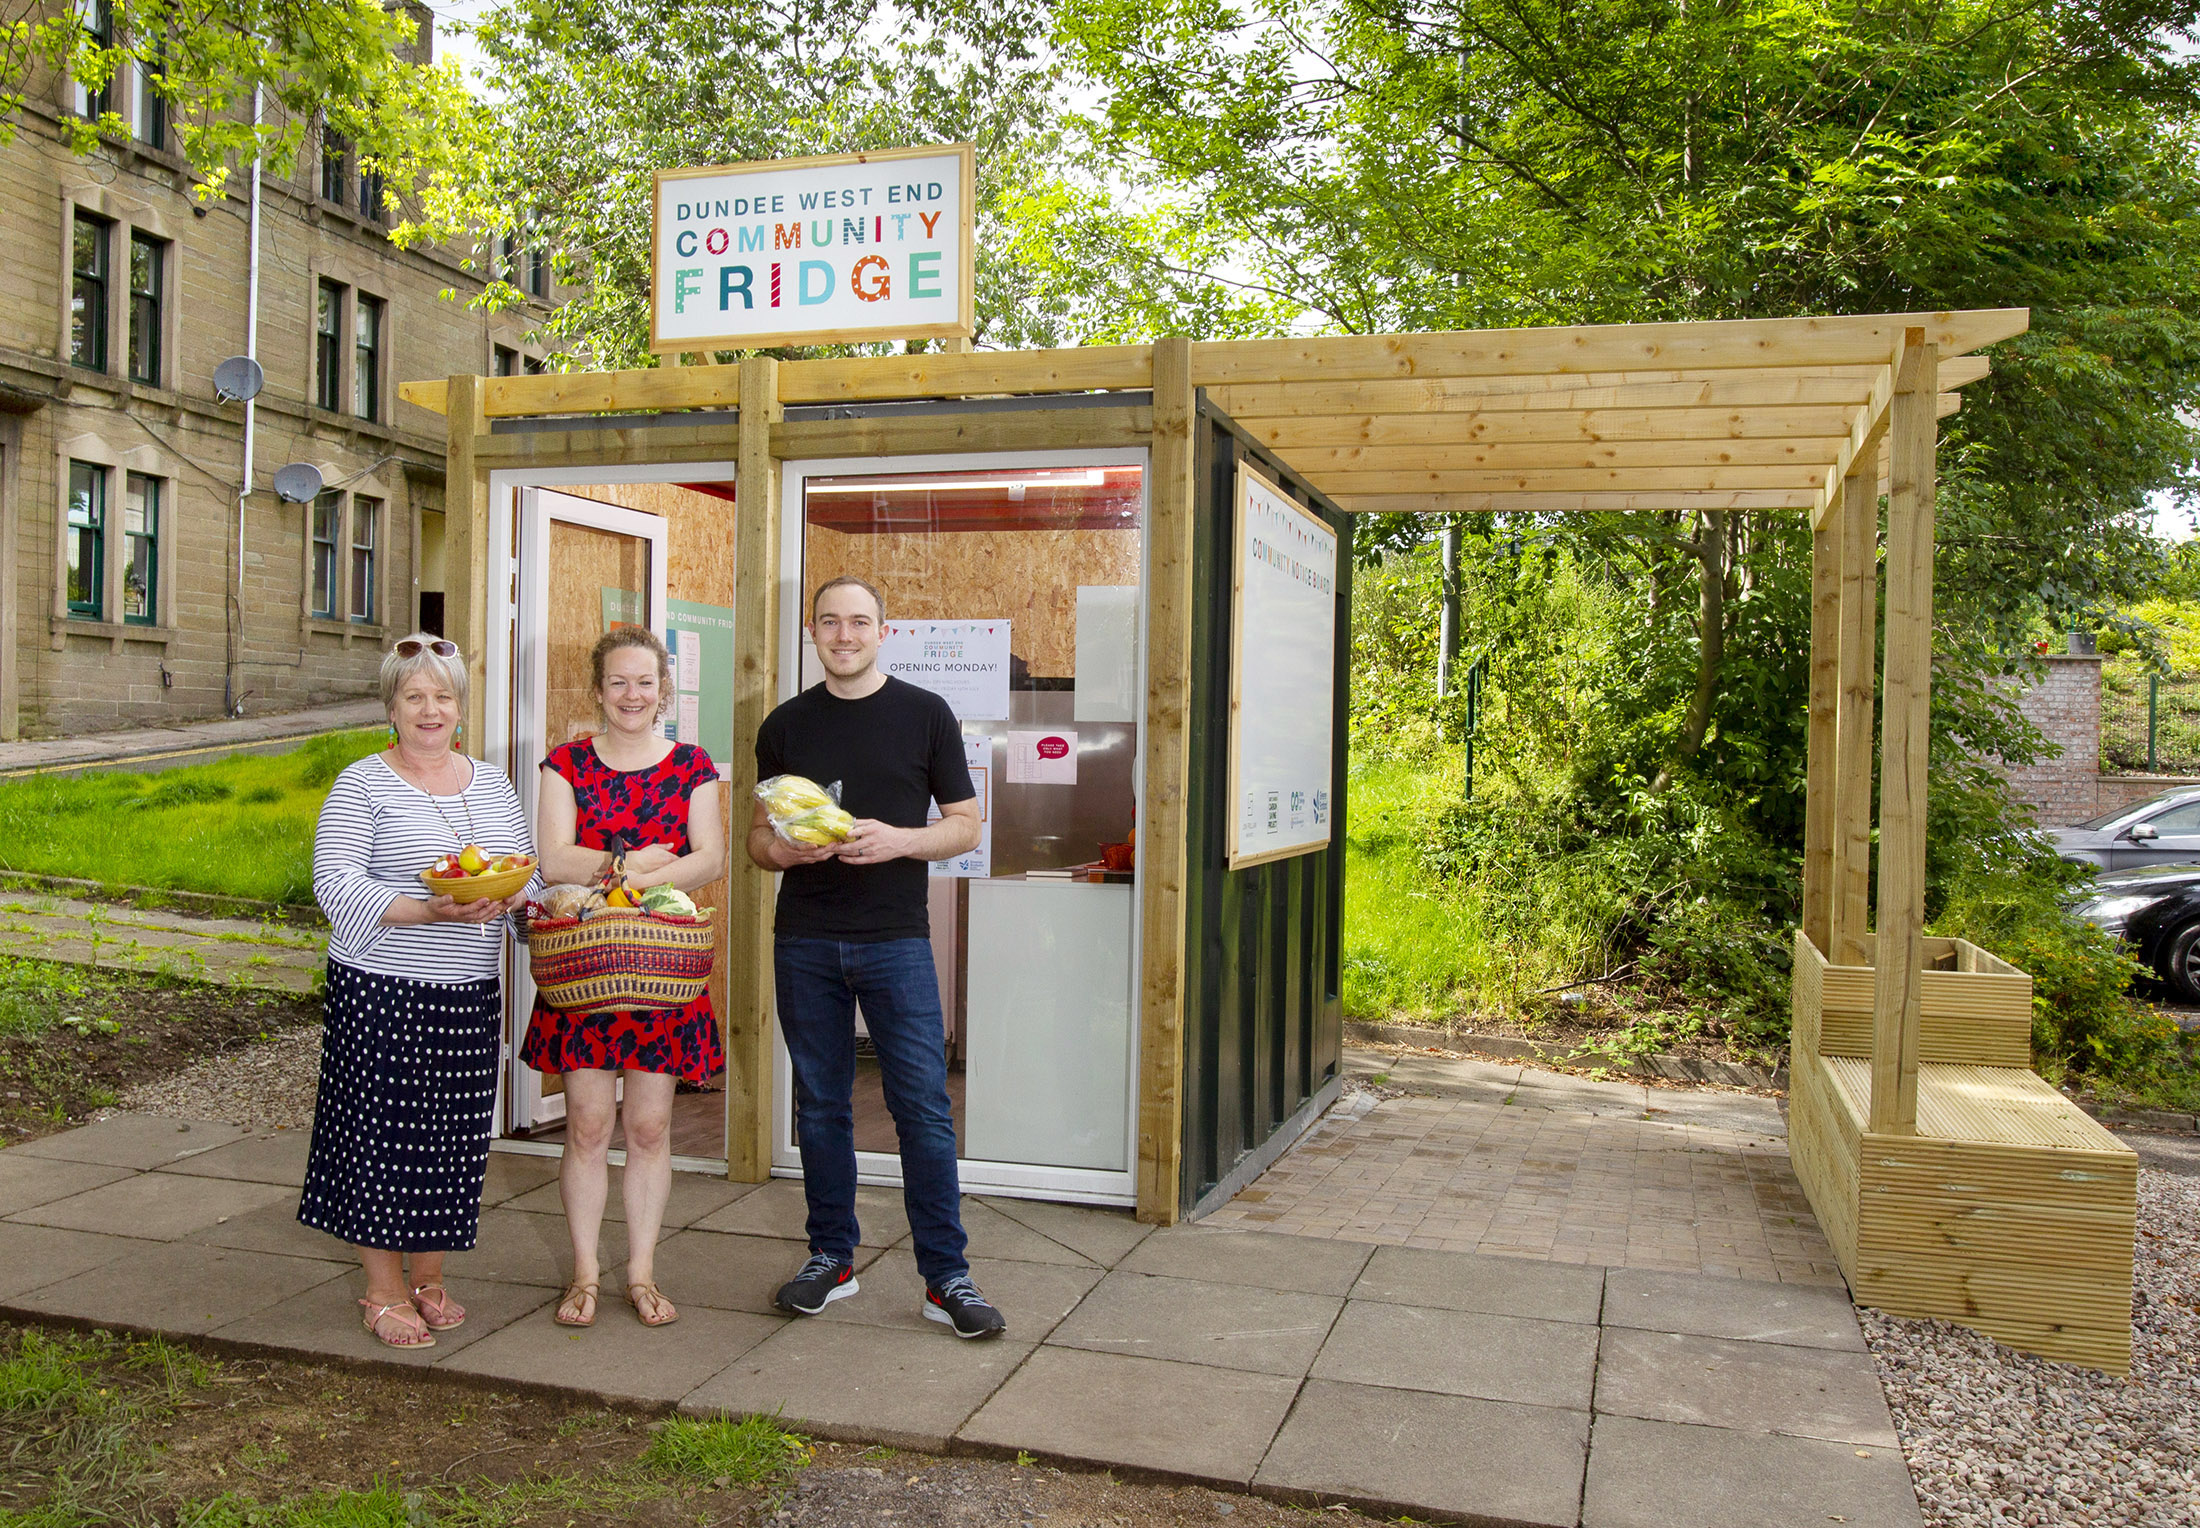 The Carbon Saving Project Team, from left, Joyce Reid, Lynsey Penny and James Anthony. Picture by Paul Reid.